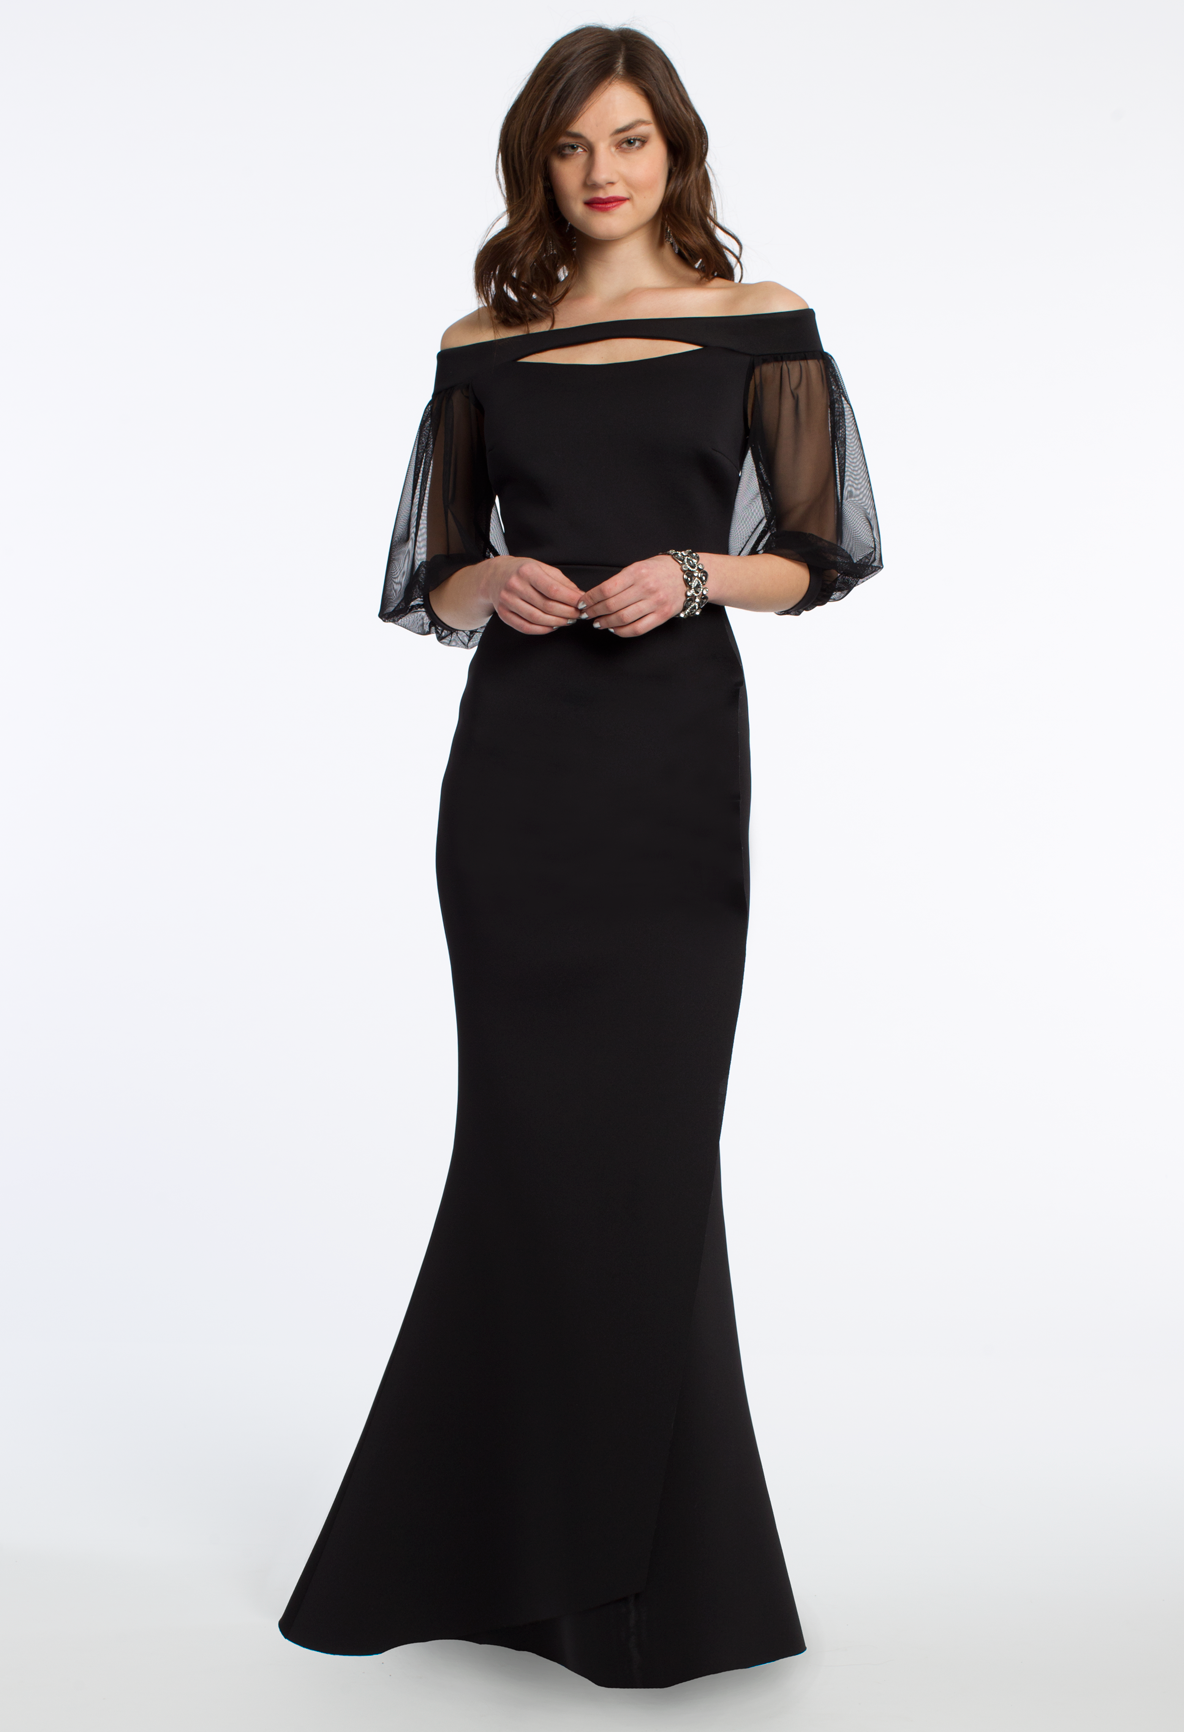 Show Up To Your Weekend Soiree In A Tasteful Long Evening Dress Between The Three Quarter Illusion Slee Evening Gowns With Sleeves Dresses Wedding Guest Dress [ 1732 x 1184 Pixel ]